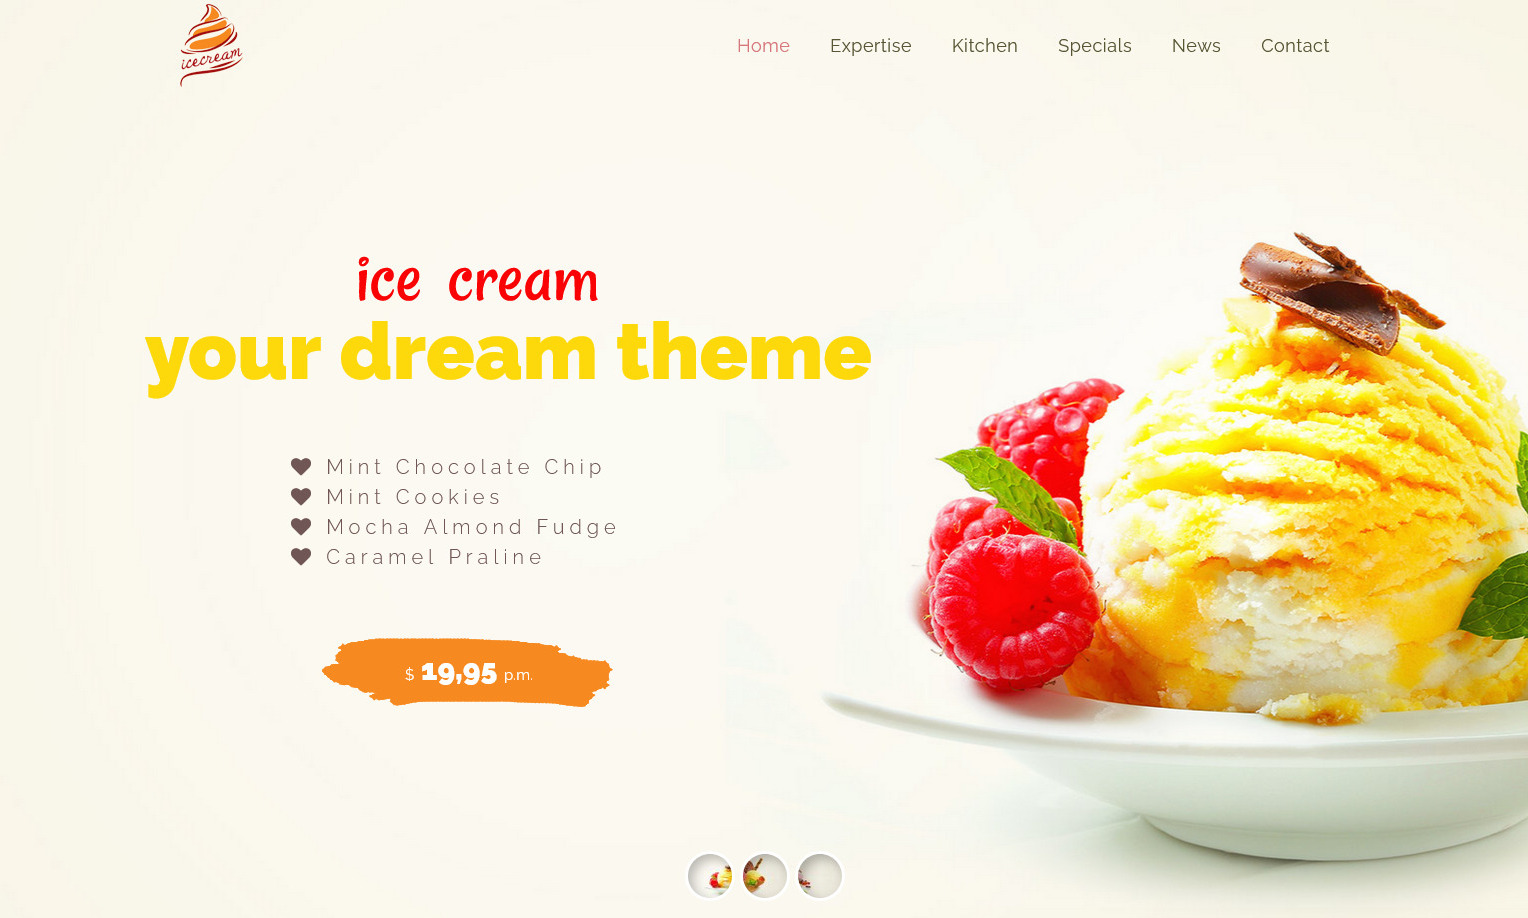 Ice Cream A Food Store Demo for Ice Cream Parlors